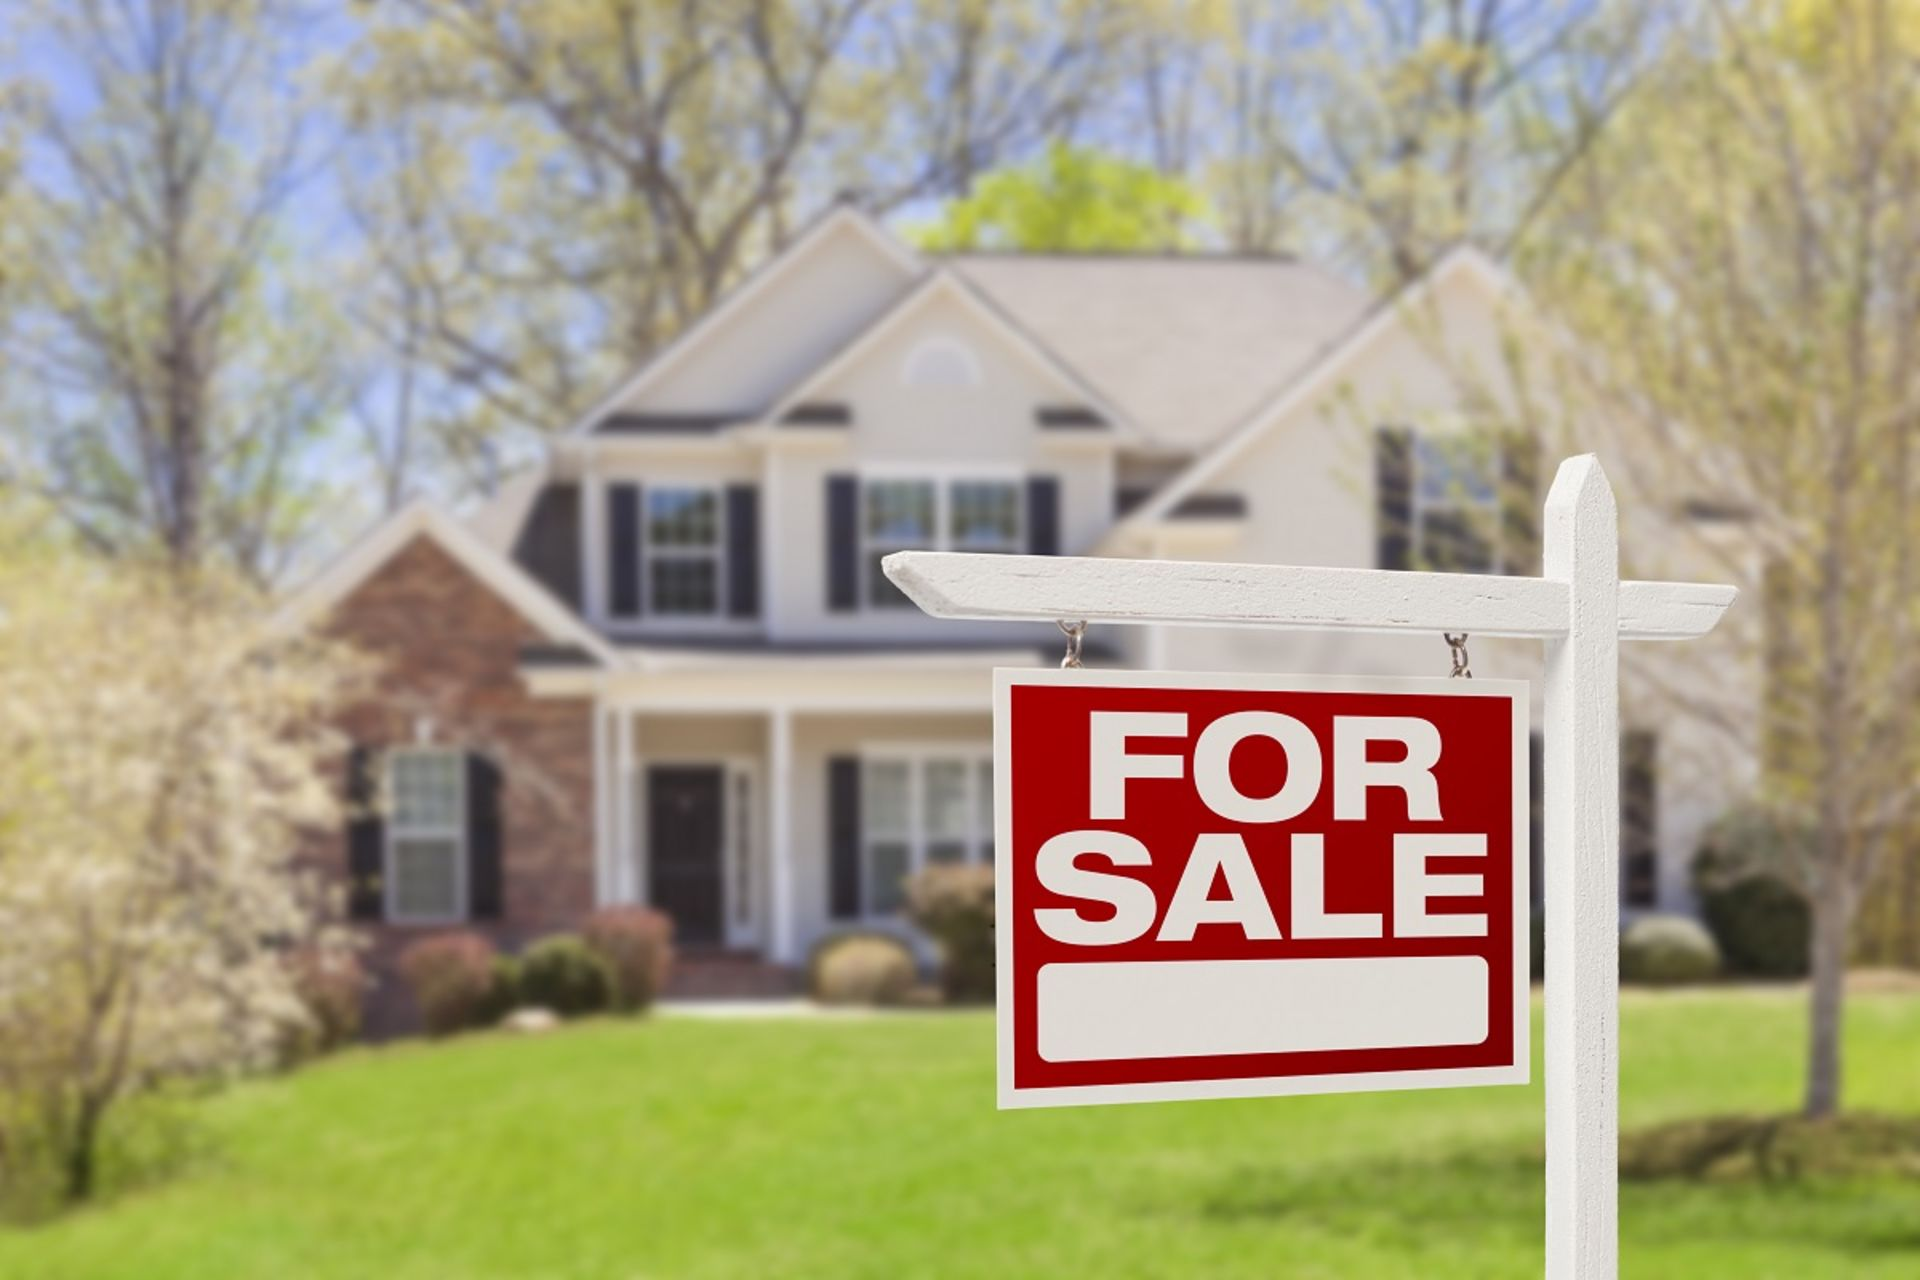 How do I sell my home fast?